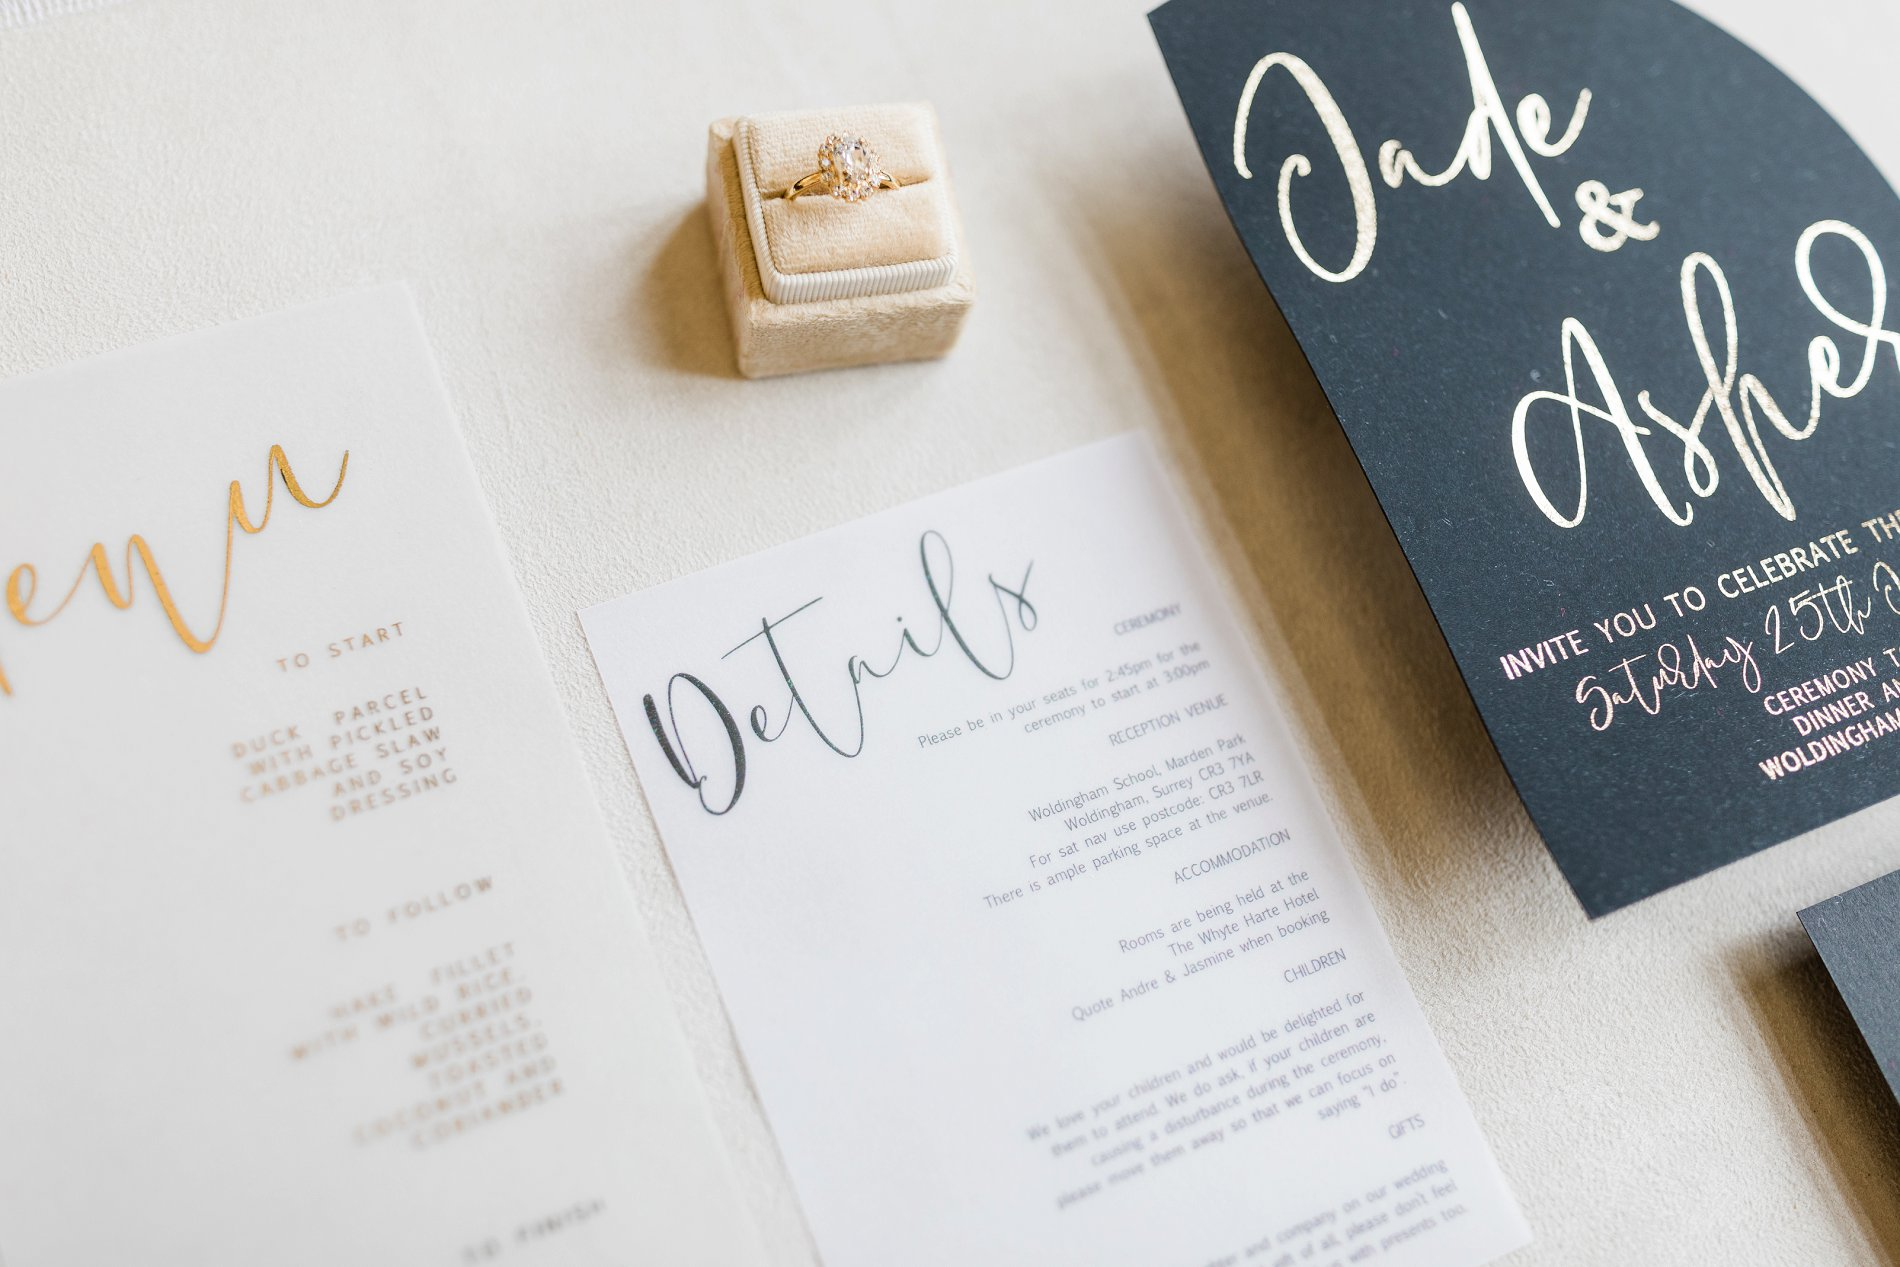 Forever Yours Styled Shoot (c) Camilla J. Hards and Courtney Dee Photography (3)